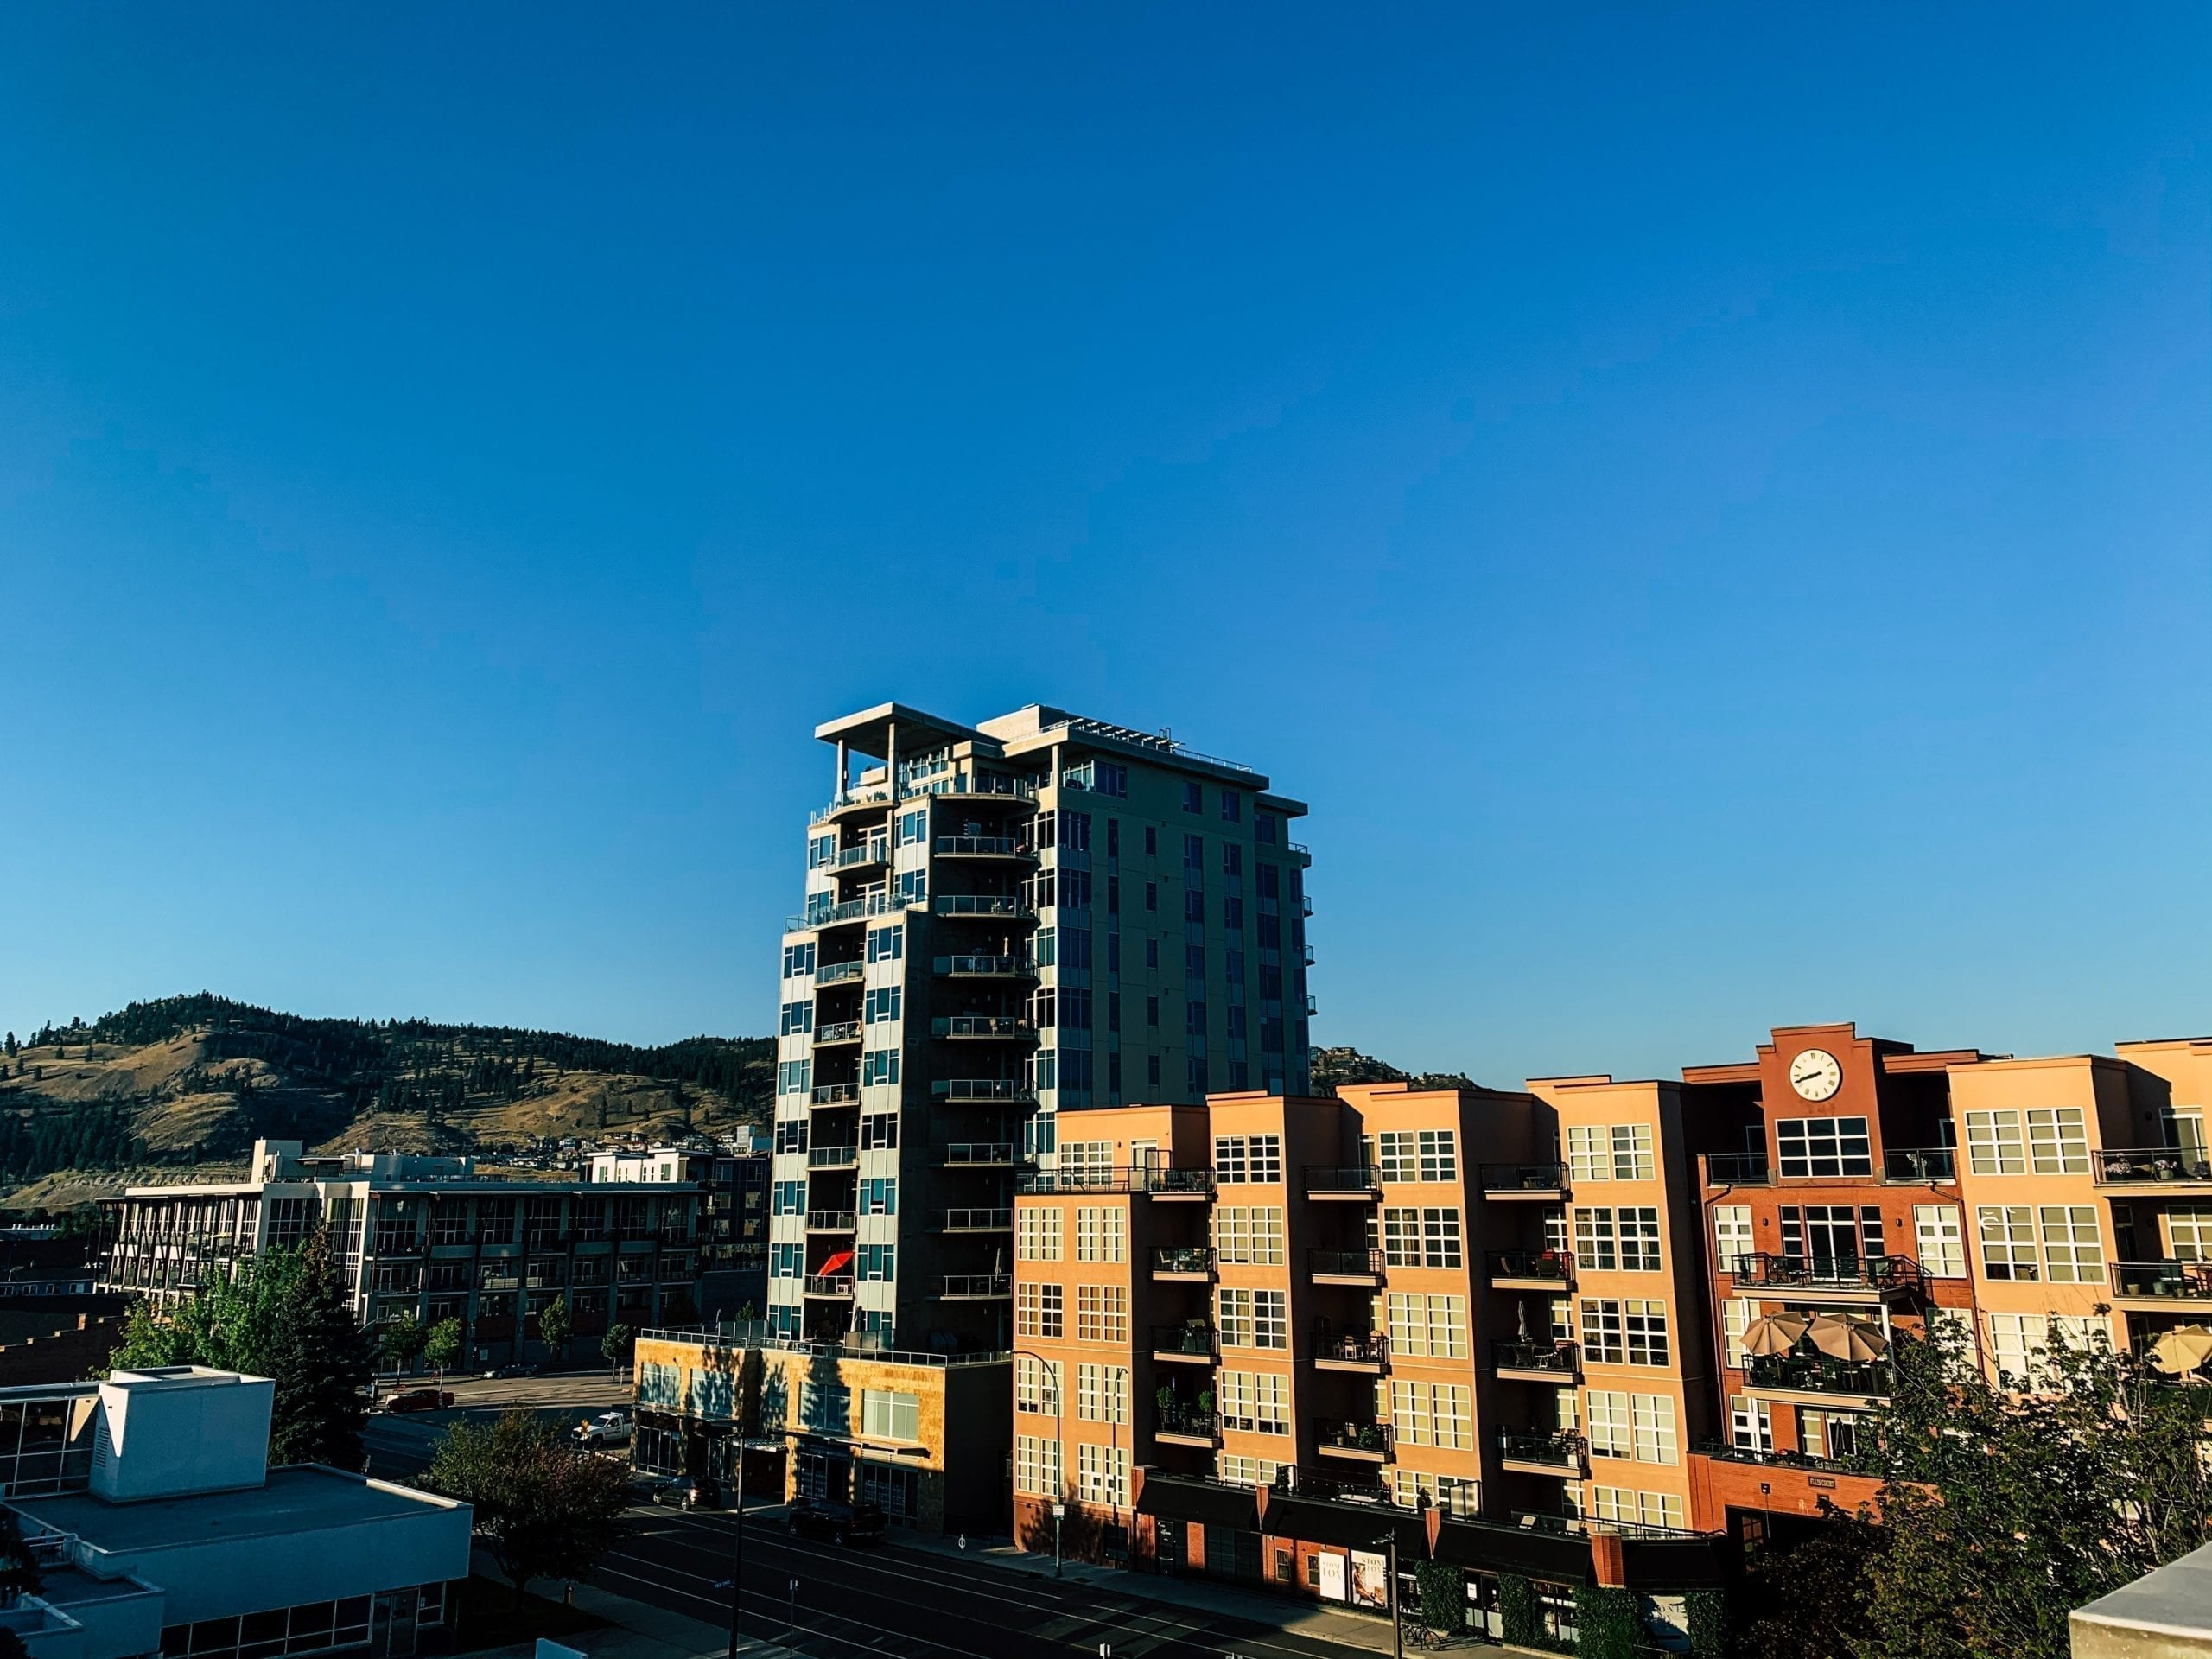 Downtown Kelowna on a clear blue day, highlighting buying a second property while renting out the first